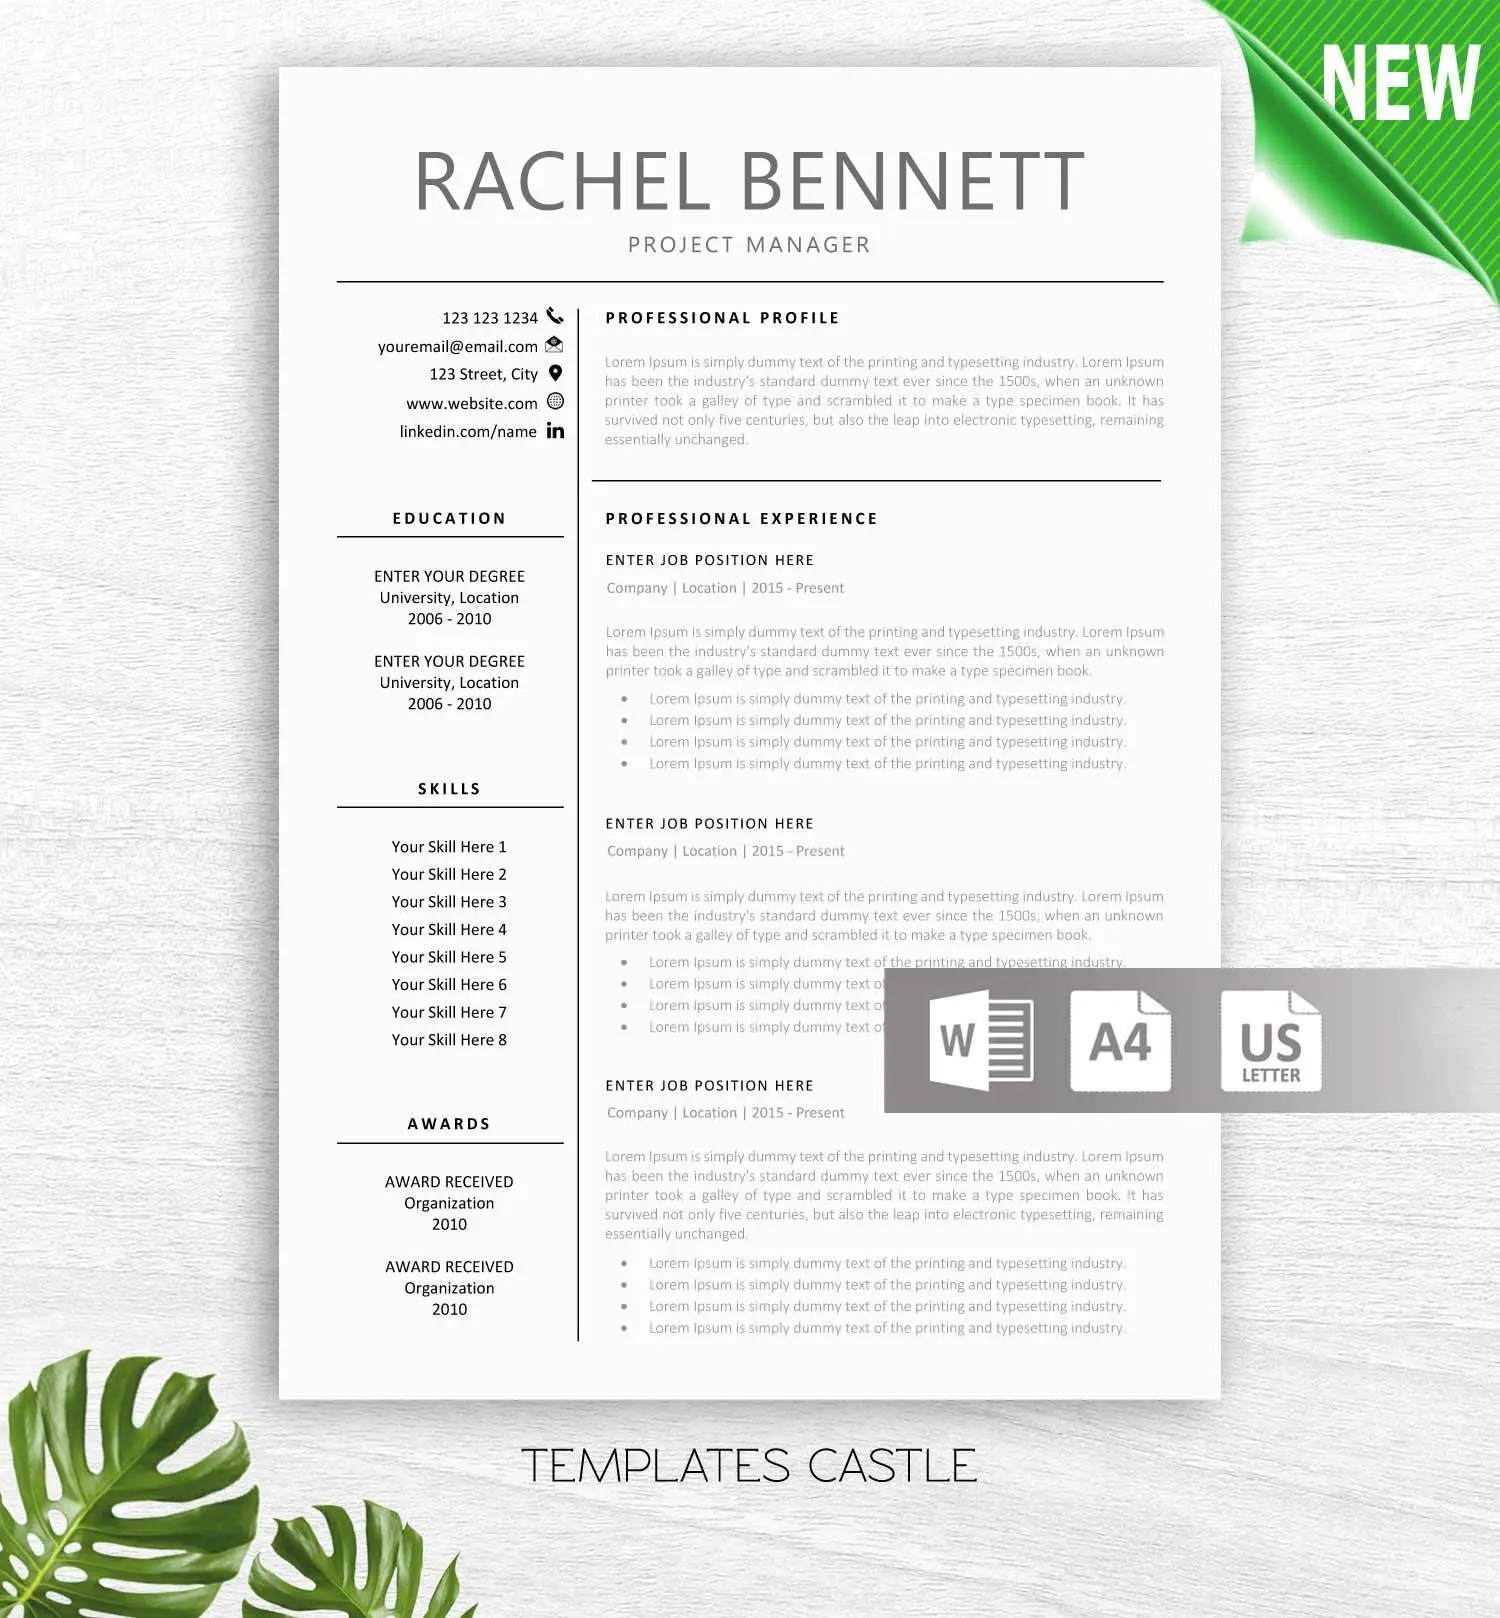 Teaching Resume Templates Resume Template Modern Professional Cv Teacher Resumes Elementary Resume Teaching Resume Administration Templates Instant Download Word Txcd